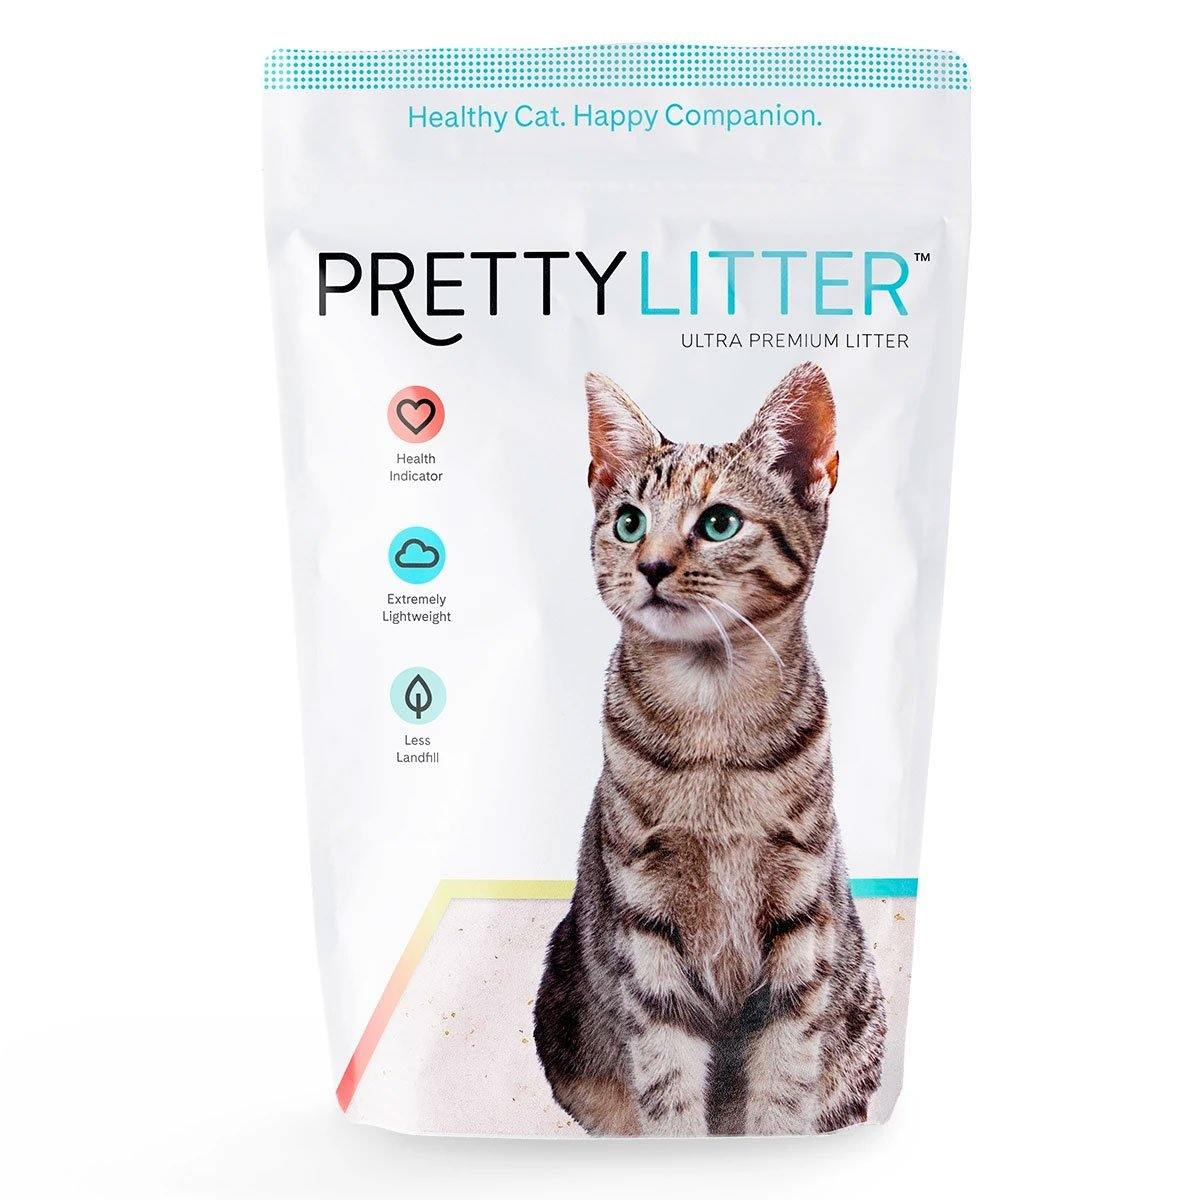 3 Months Supply of PrettyLitter for One Cat